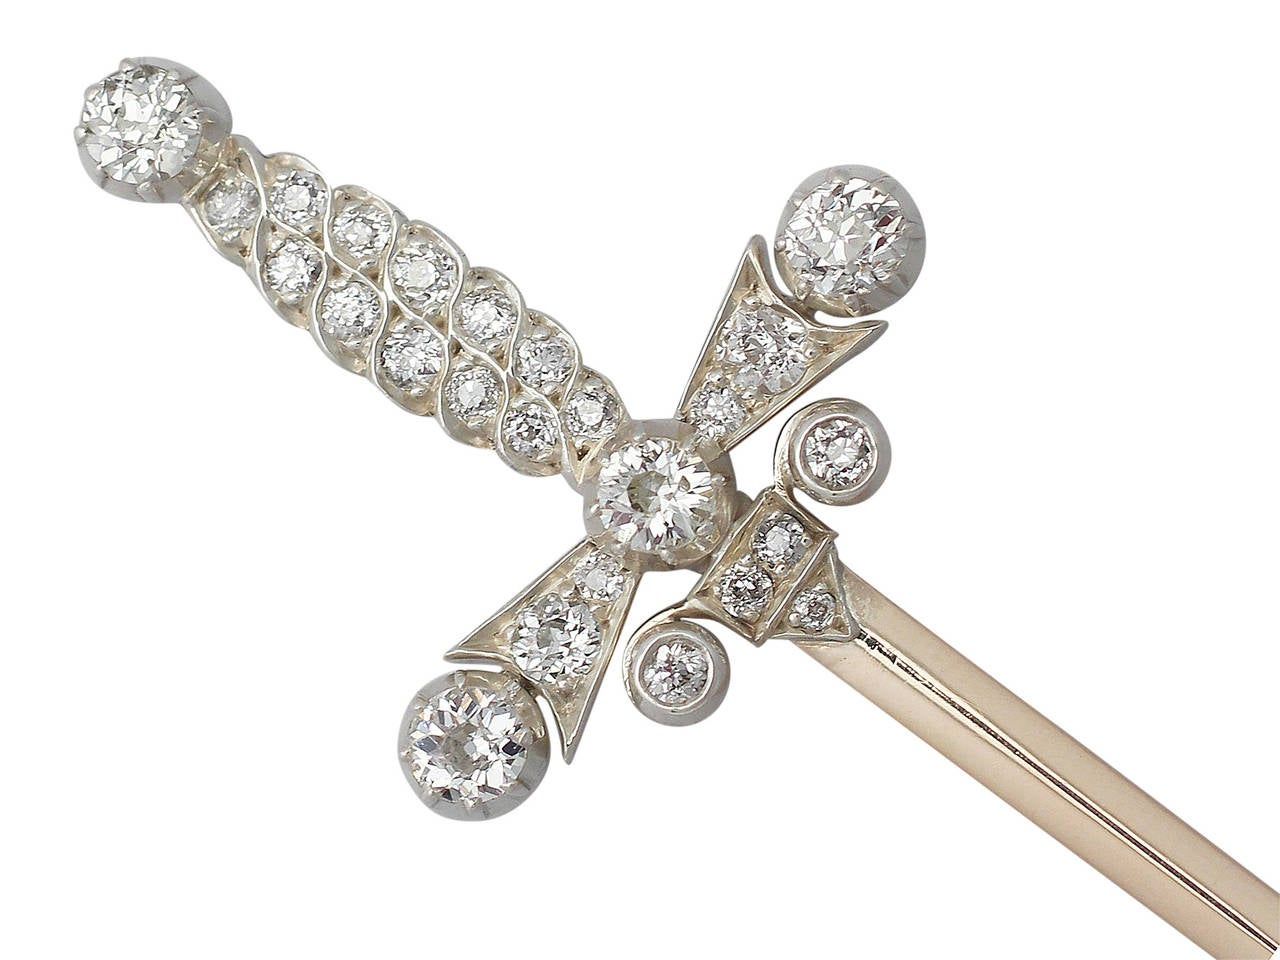 1.59Ct Diamond & 9k Yellow Gold Jabot Pin 'Sword' Brooch - Antique Edwardian In Excellent Condition For Sale In Jesmond, GB